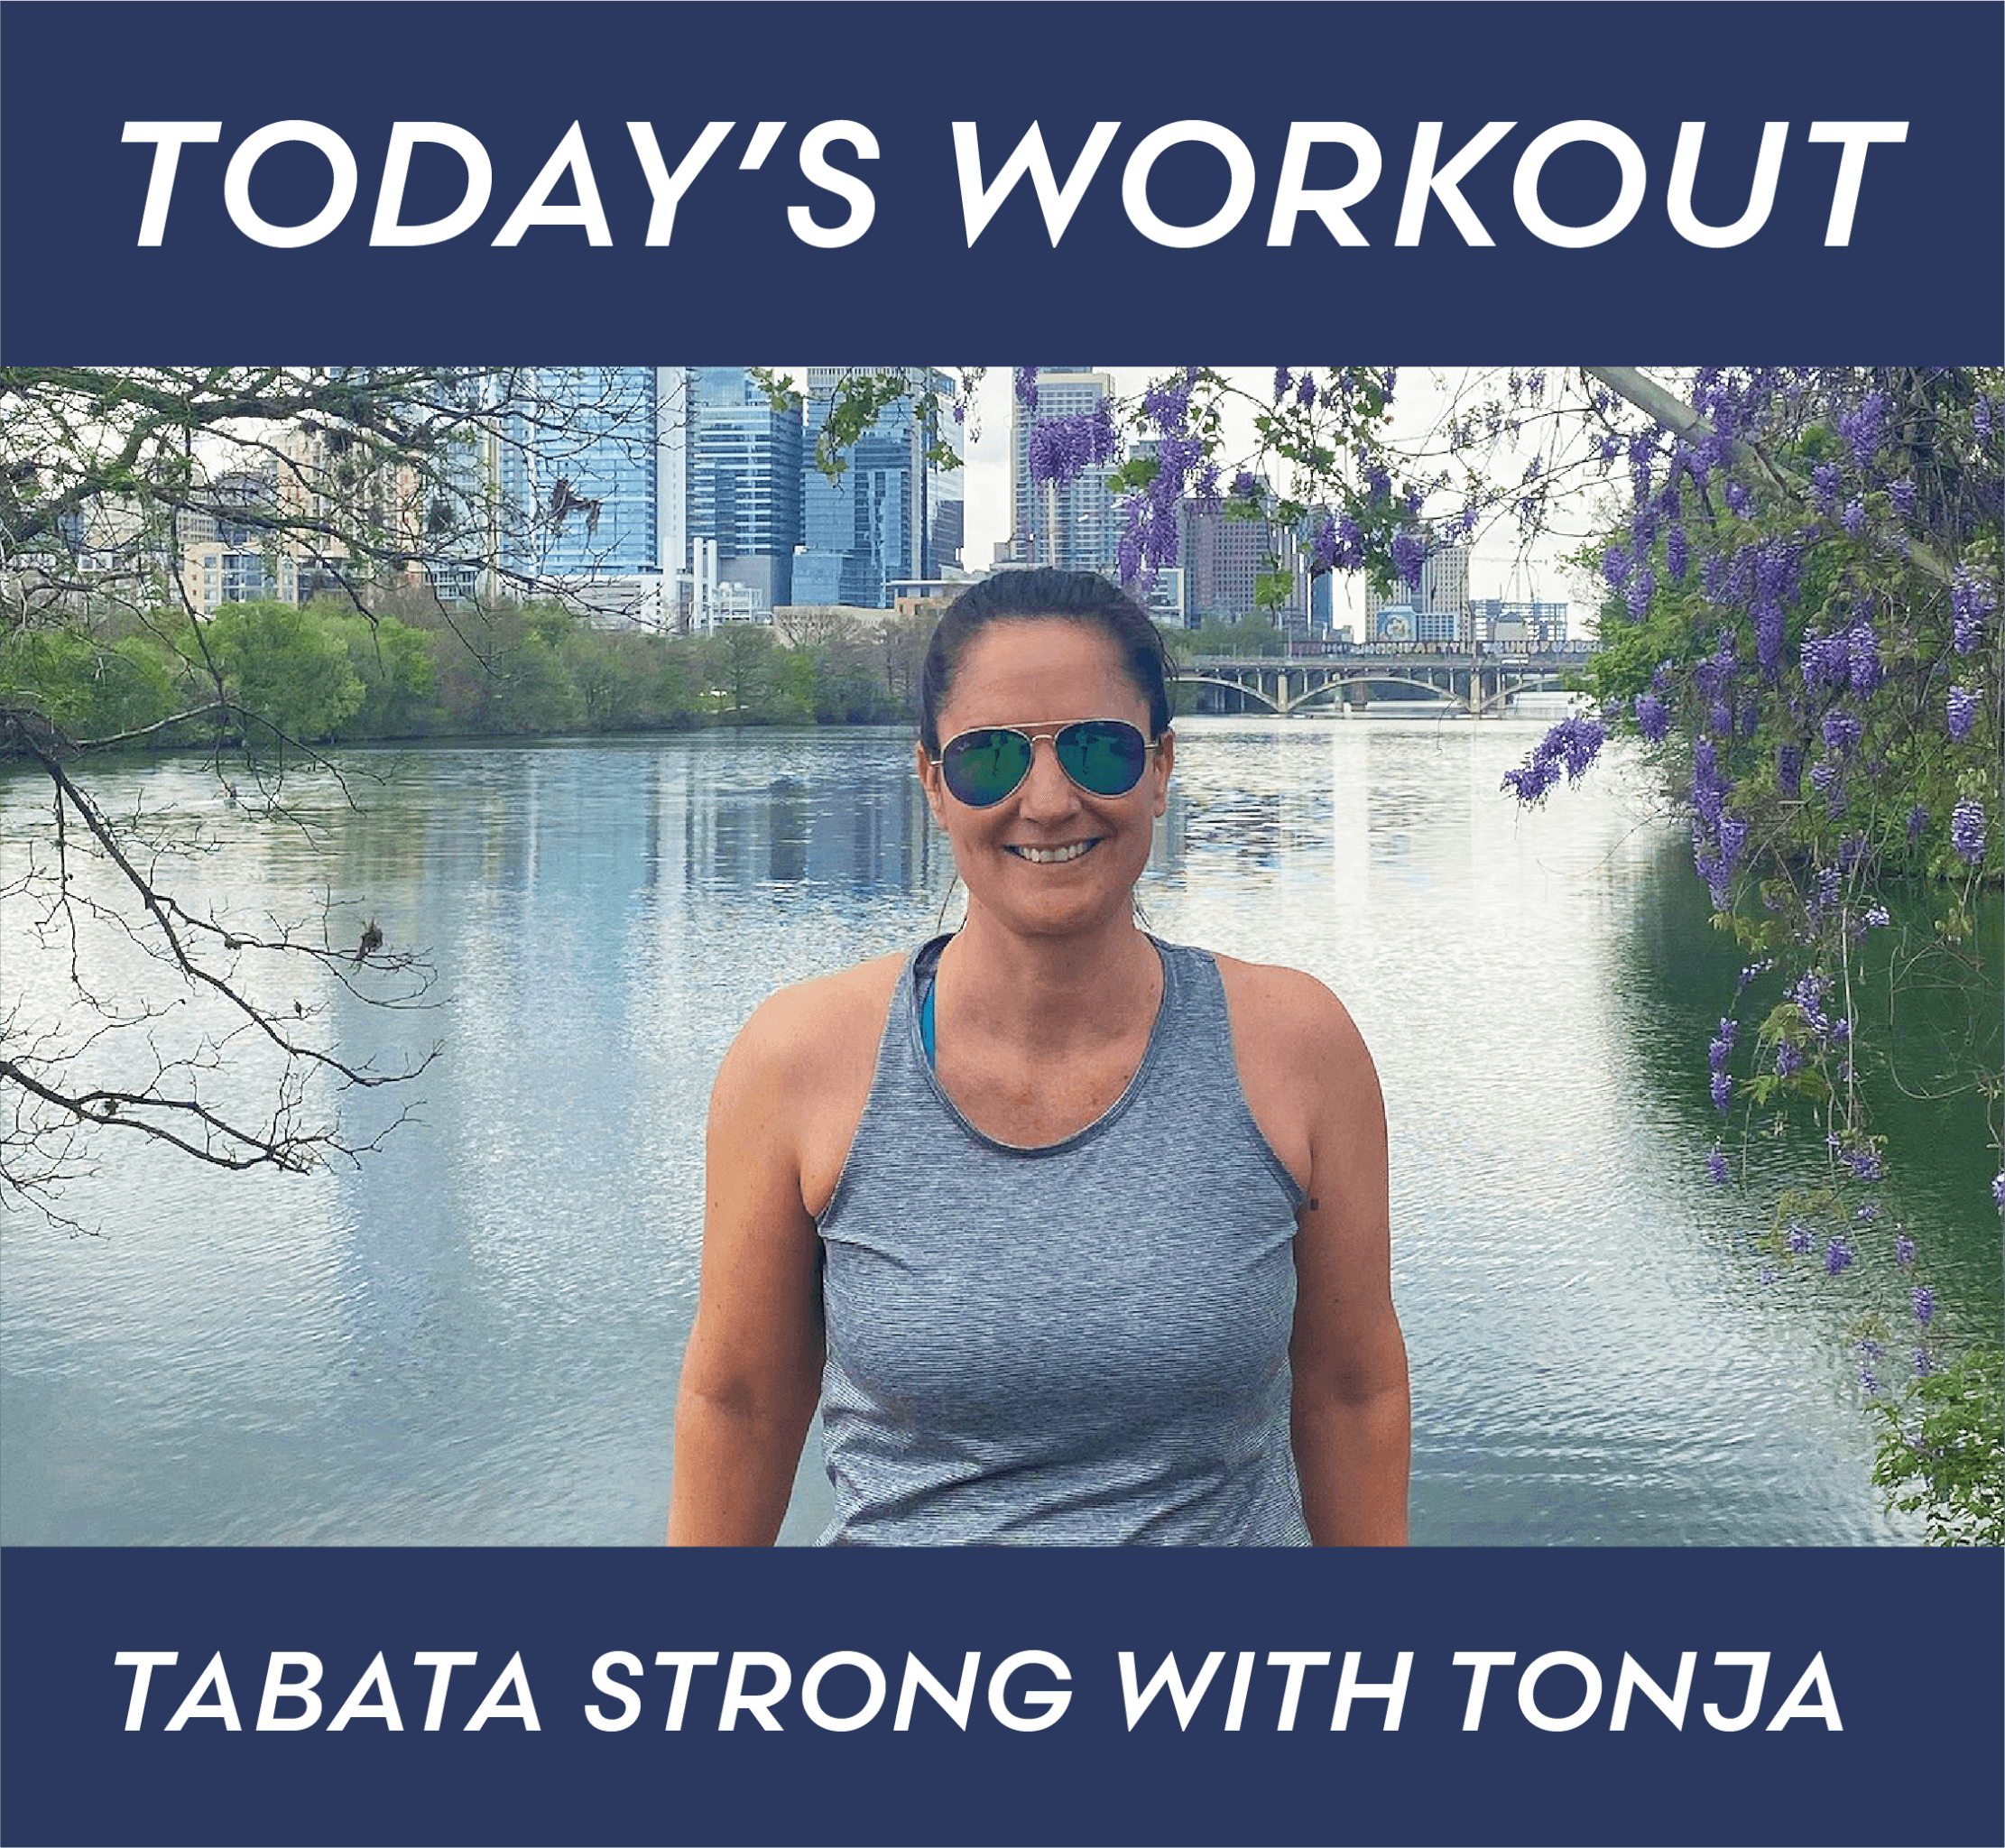 Daily Workout – Tabata Strong